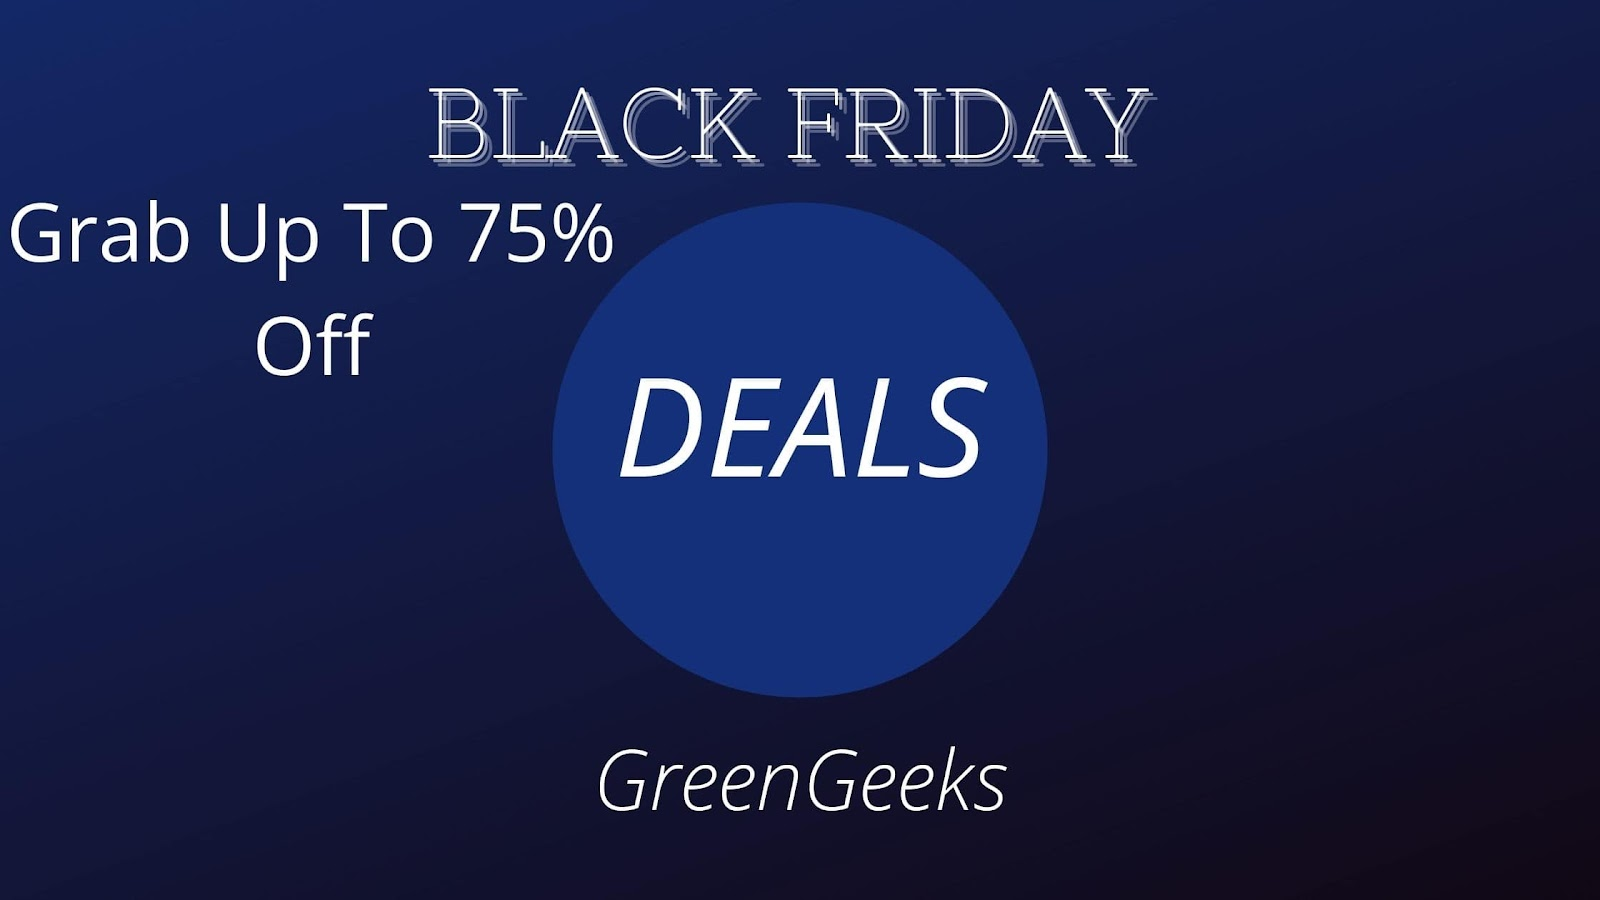 GreenGeeks: Grab Up To 75% Off